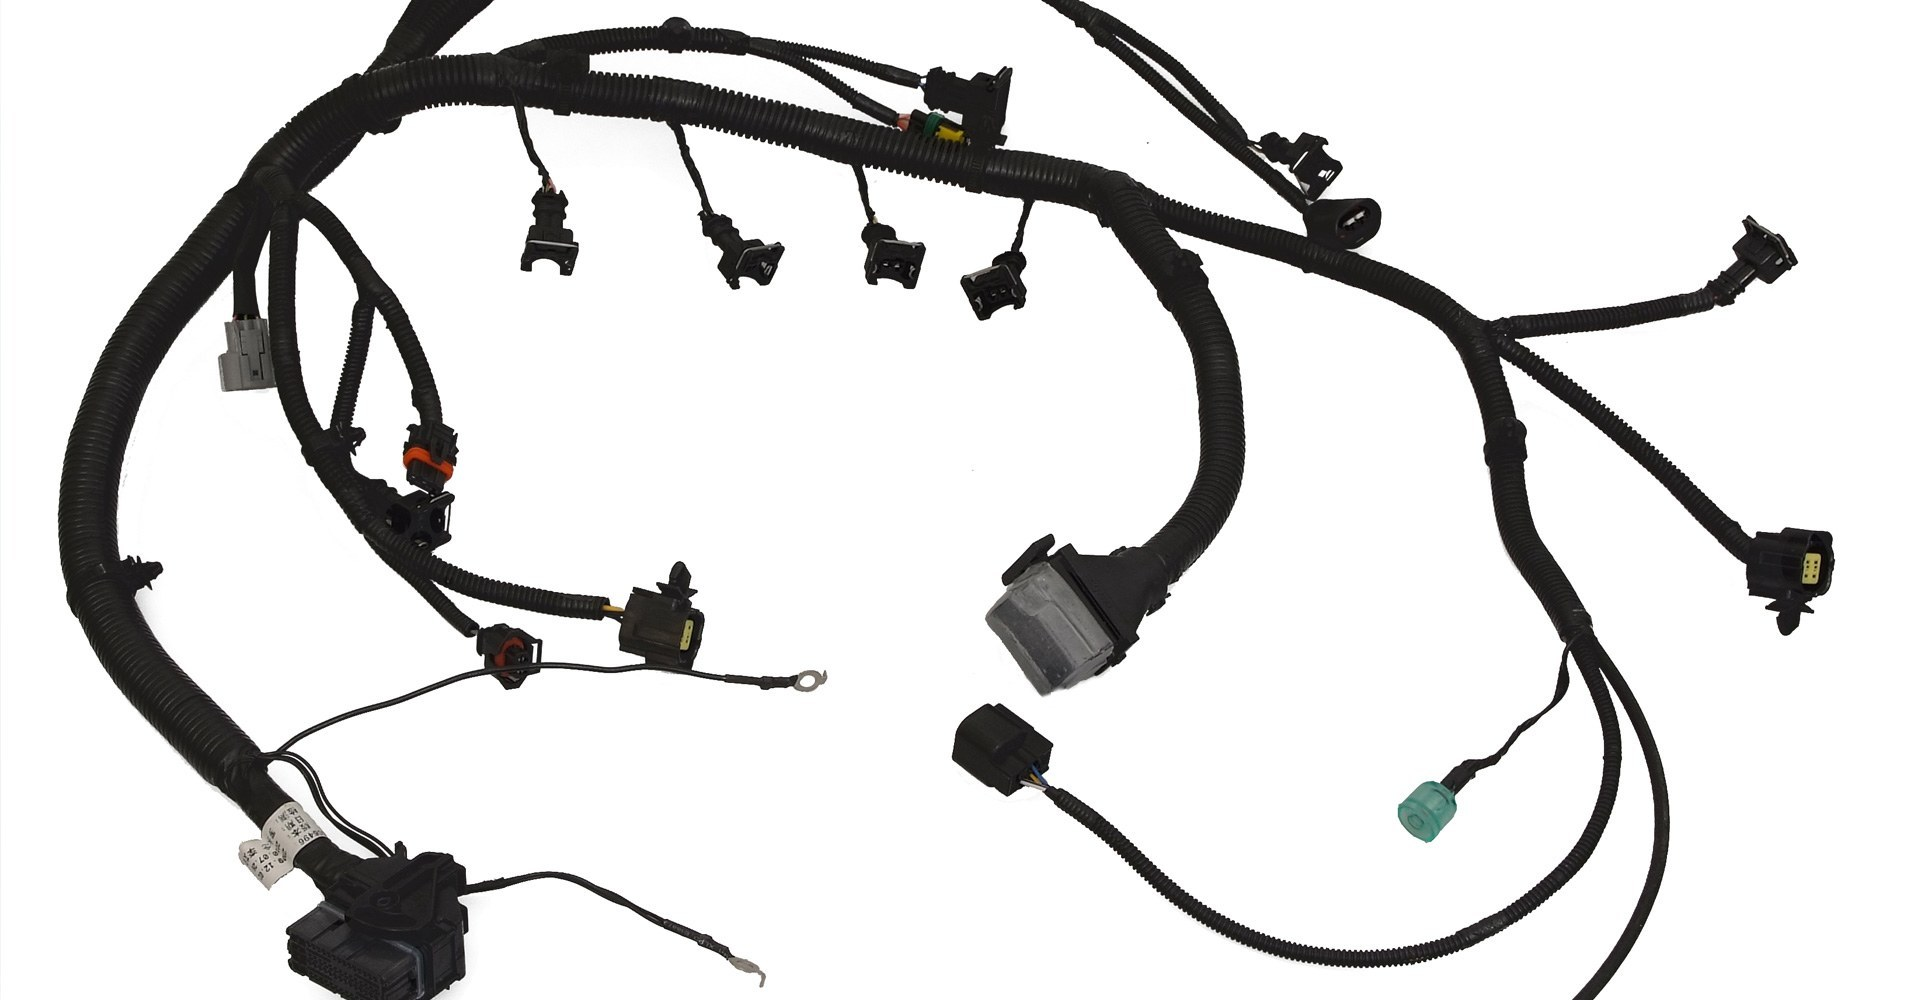 wireharness automotive wire harness products lorom automotive wiring harnesses at eliteediting.co